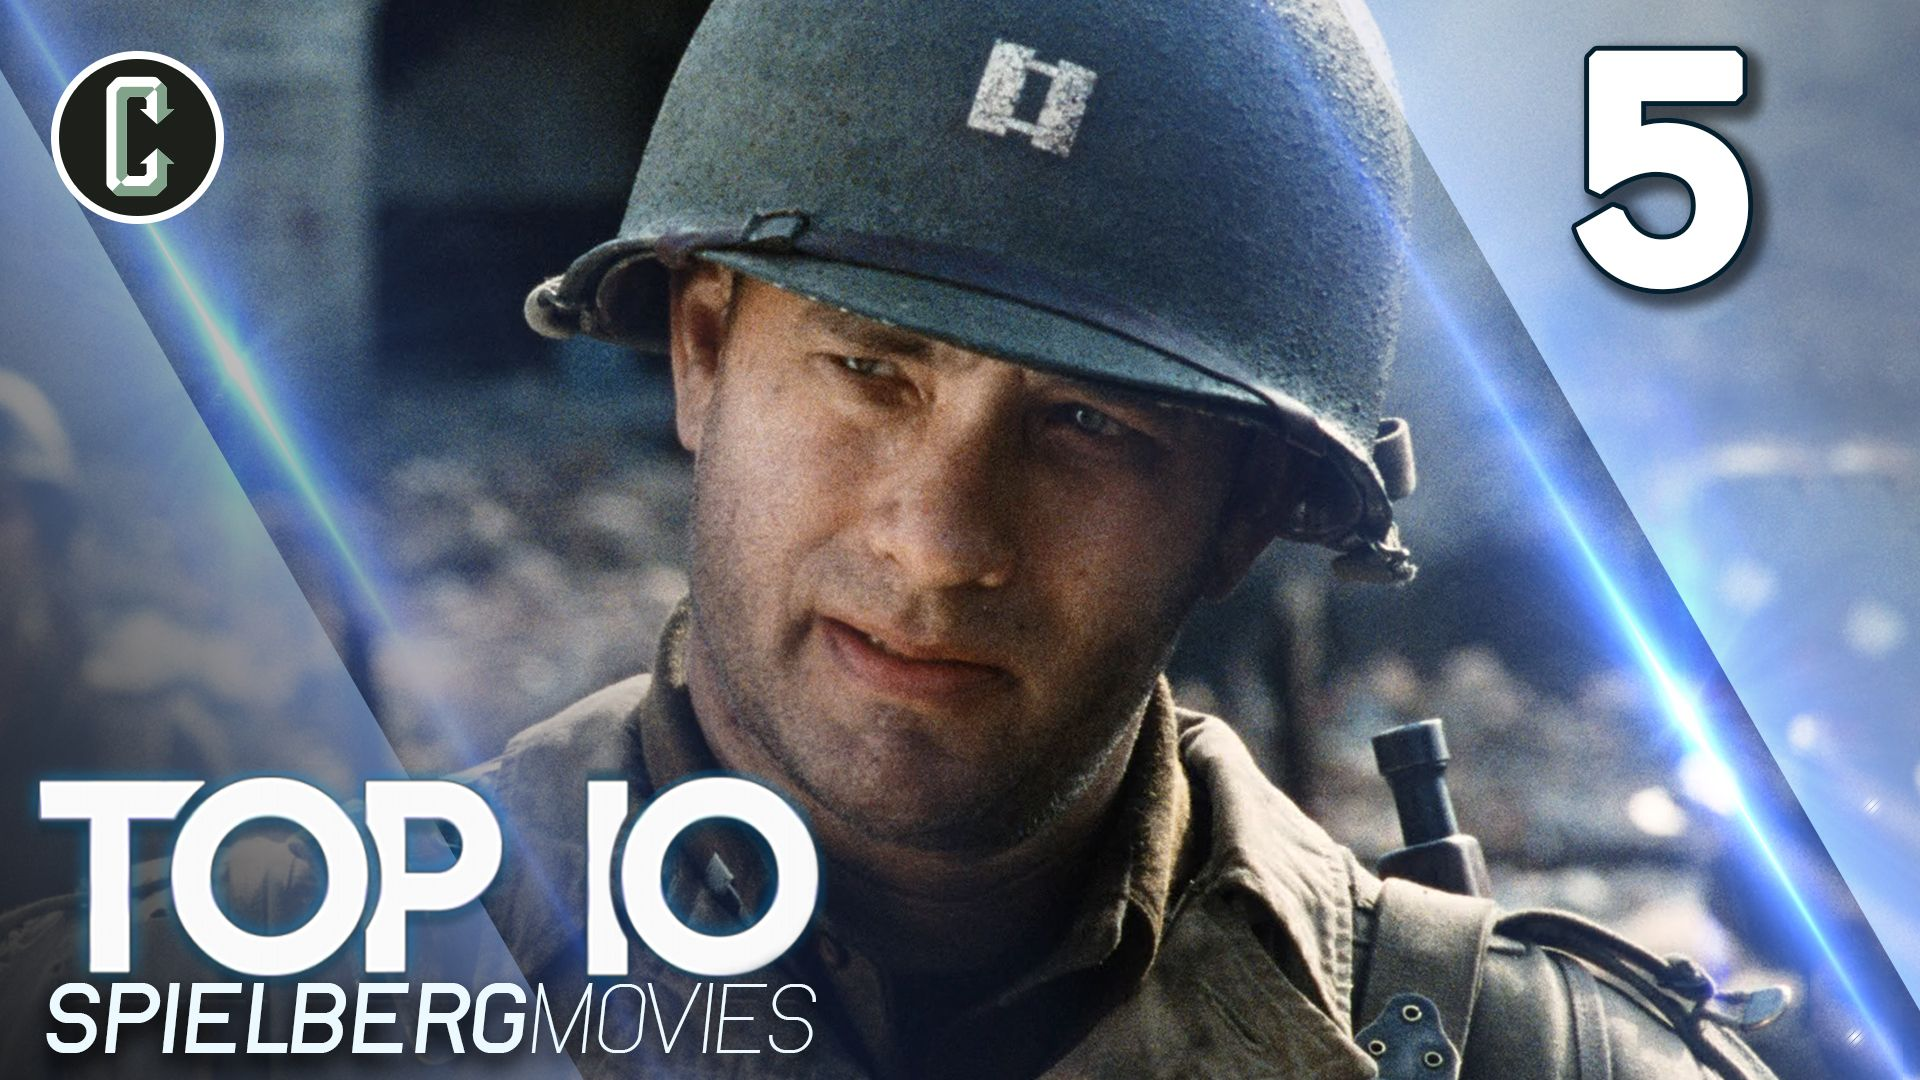 an analysis of saving private ryan a film by steven spielberg Molly haskell's spielberg analysis ranges from disappointing to downright bizarre  here comes molly haskell's steven spielberg:  haskell writes saving.